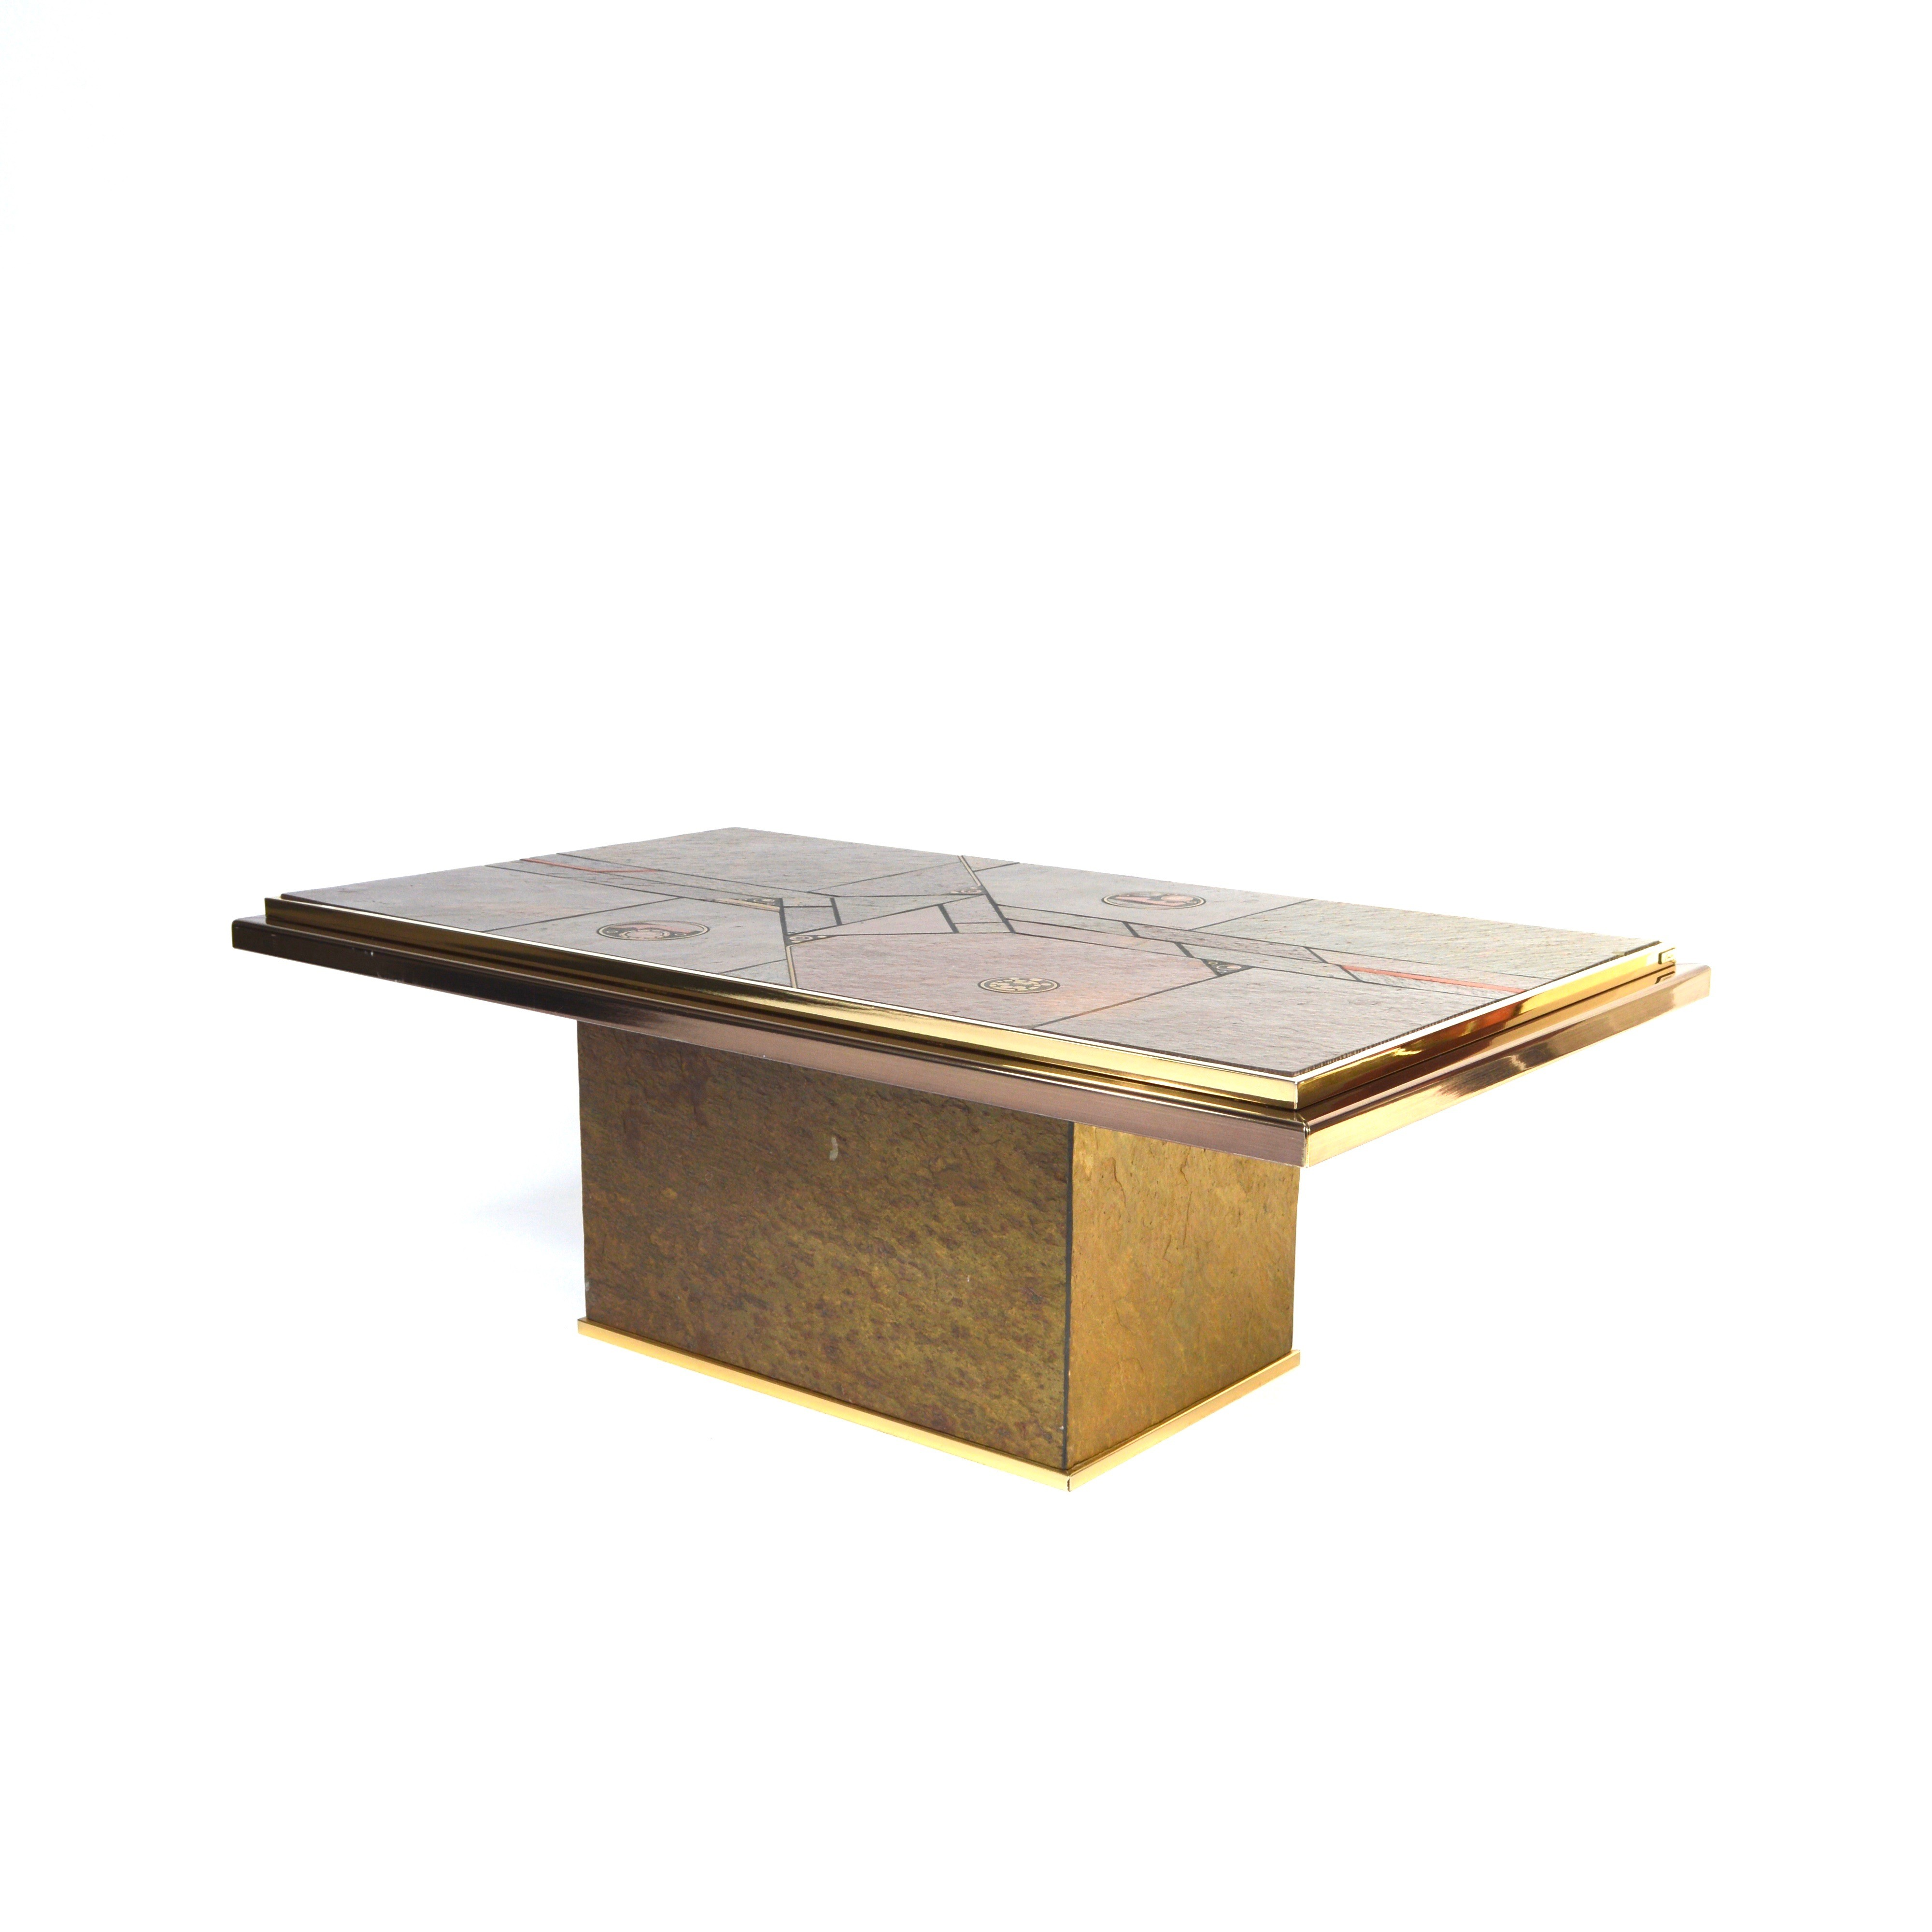 Le Corbusier Coffee Table Images Le Corbusier Coffee  : dutch fedam coffee table in granite and brass paul kingma 1970s from zenlaser.co size 4000 x 4000 jpeg 739kB